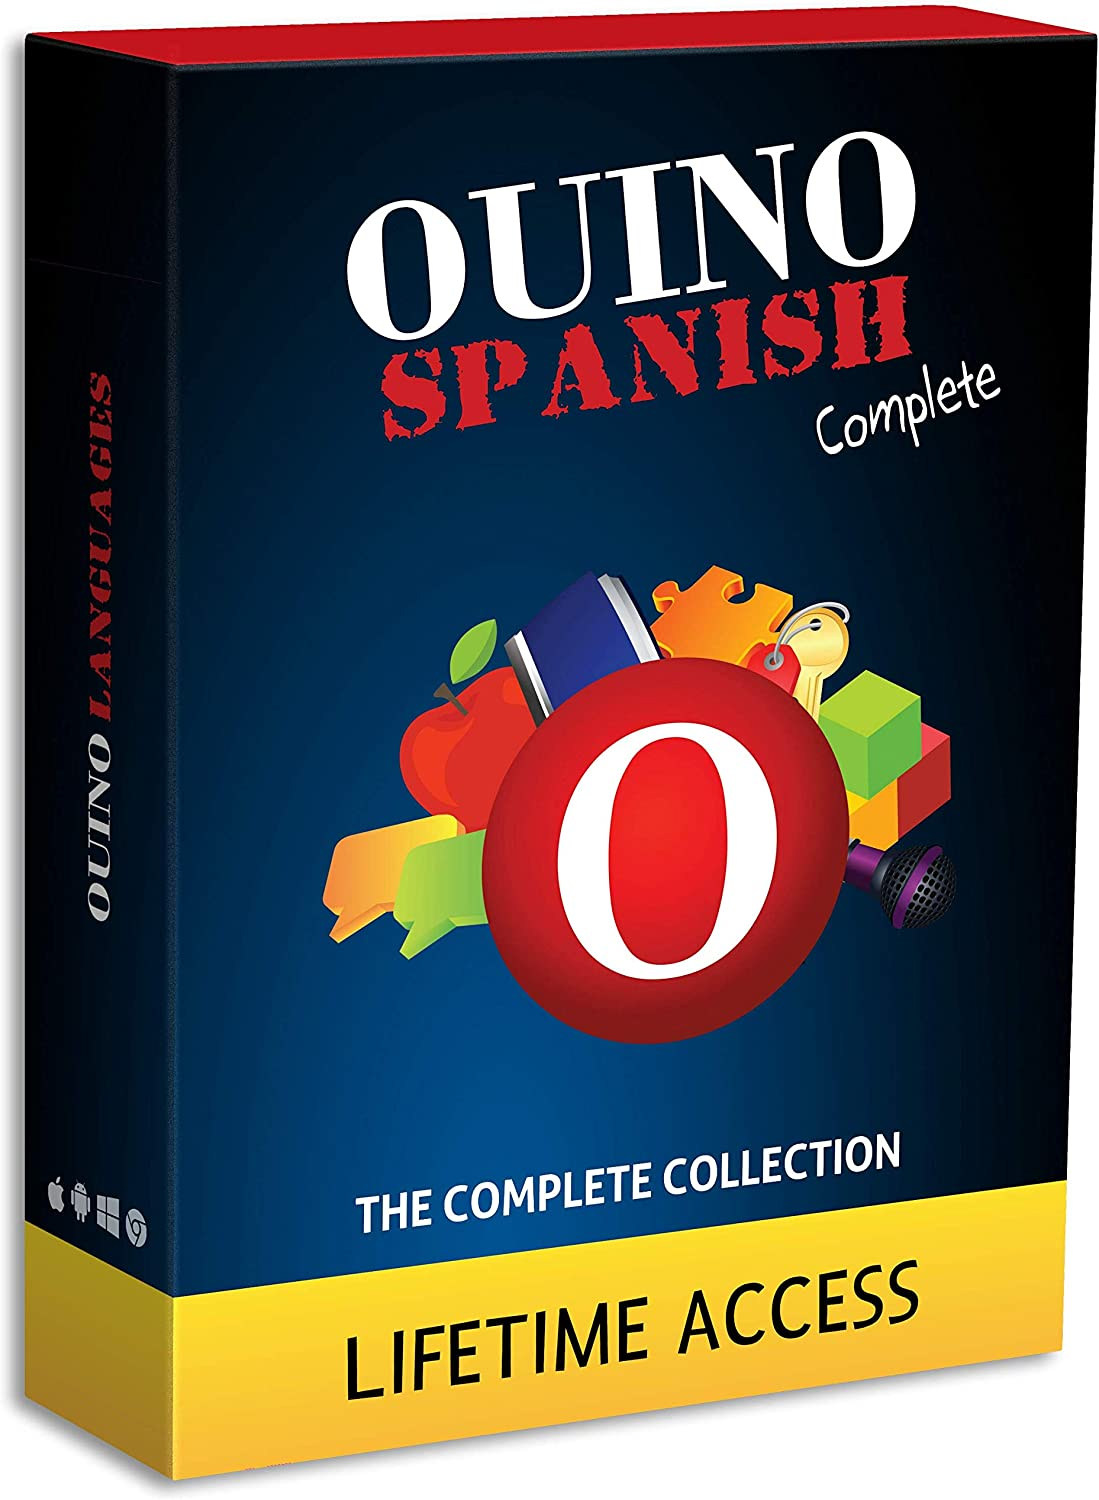 B00BMT5HVK Learn Spanish with OUINO: The Complete Expanded Edition v3 | Lifetime Access (for PC, Mac, iOS, Android, Chromebook) 81VAyVf2dyL.SL1500_